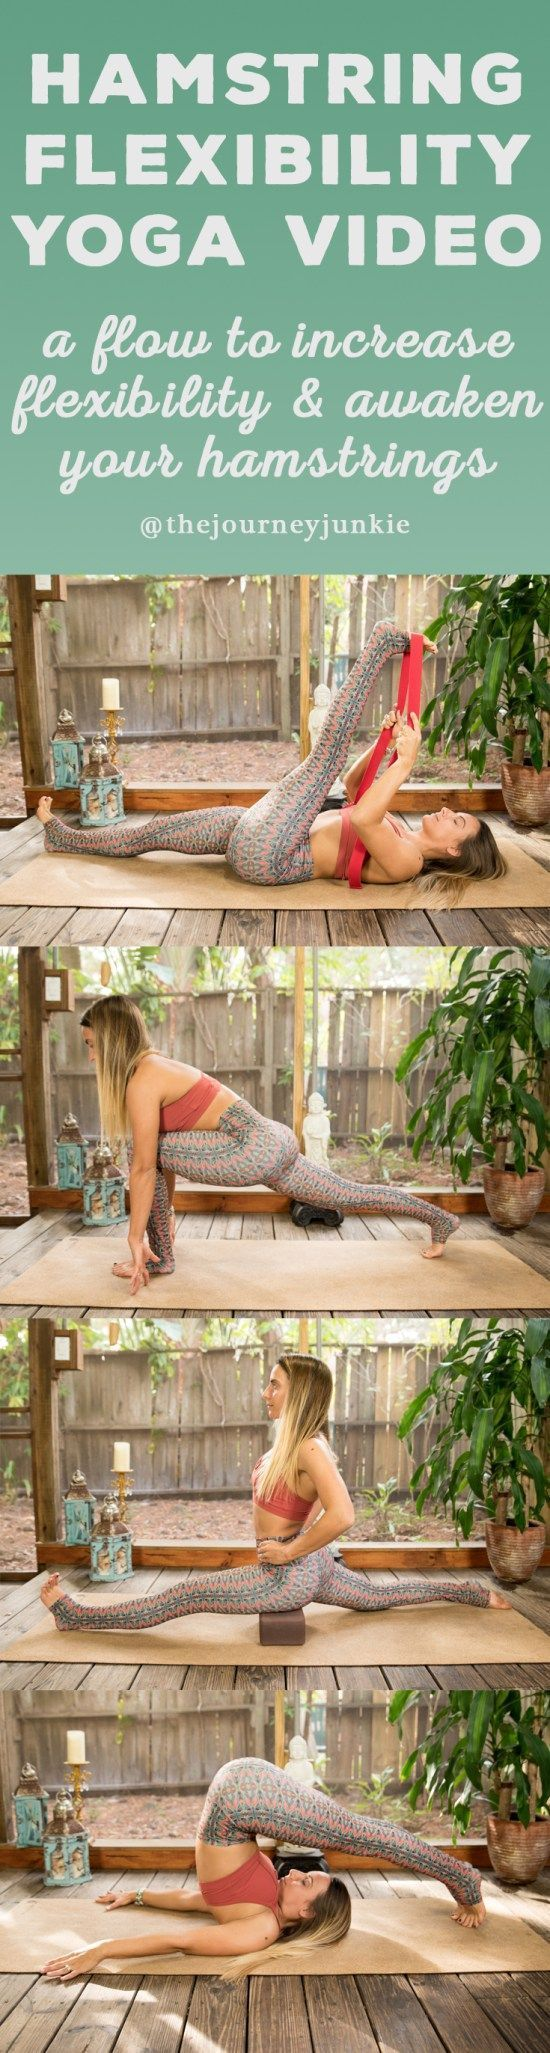 Hamstring Yoga Flow for Flexibility - 30 Minute Video